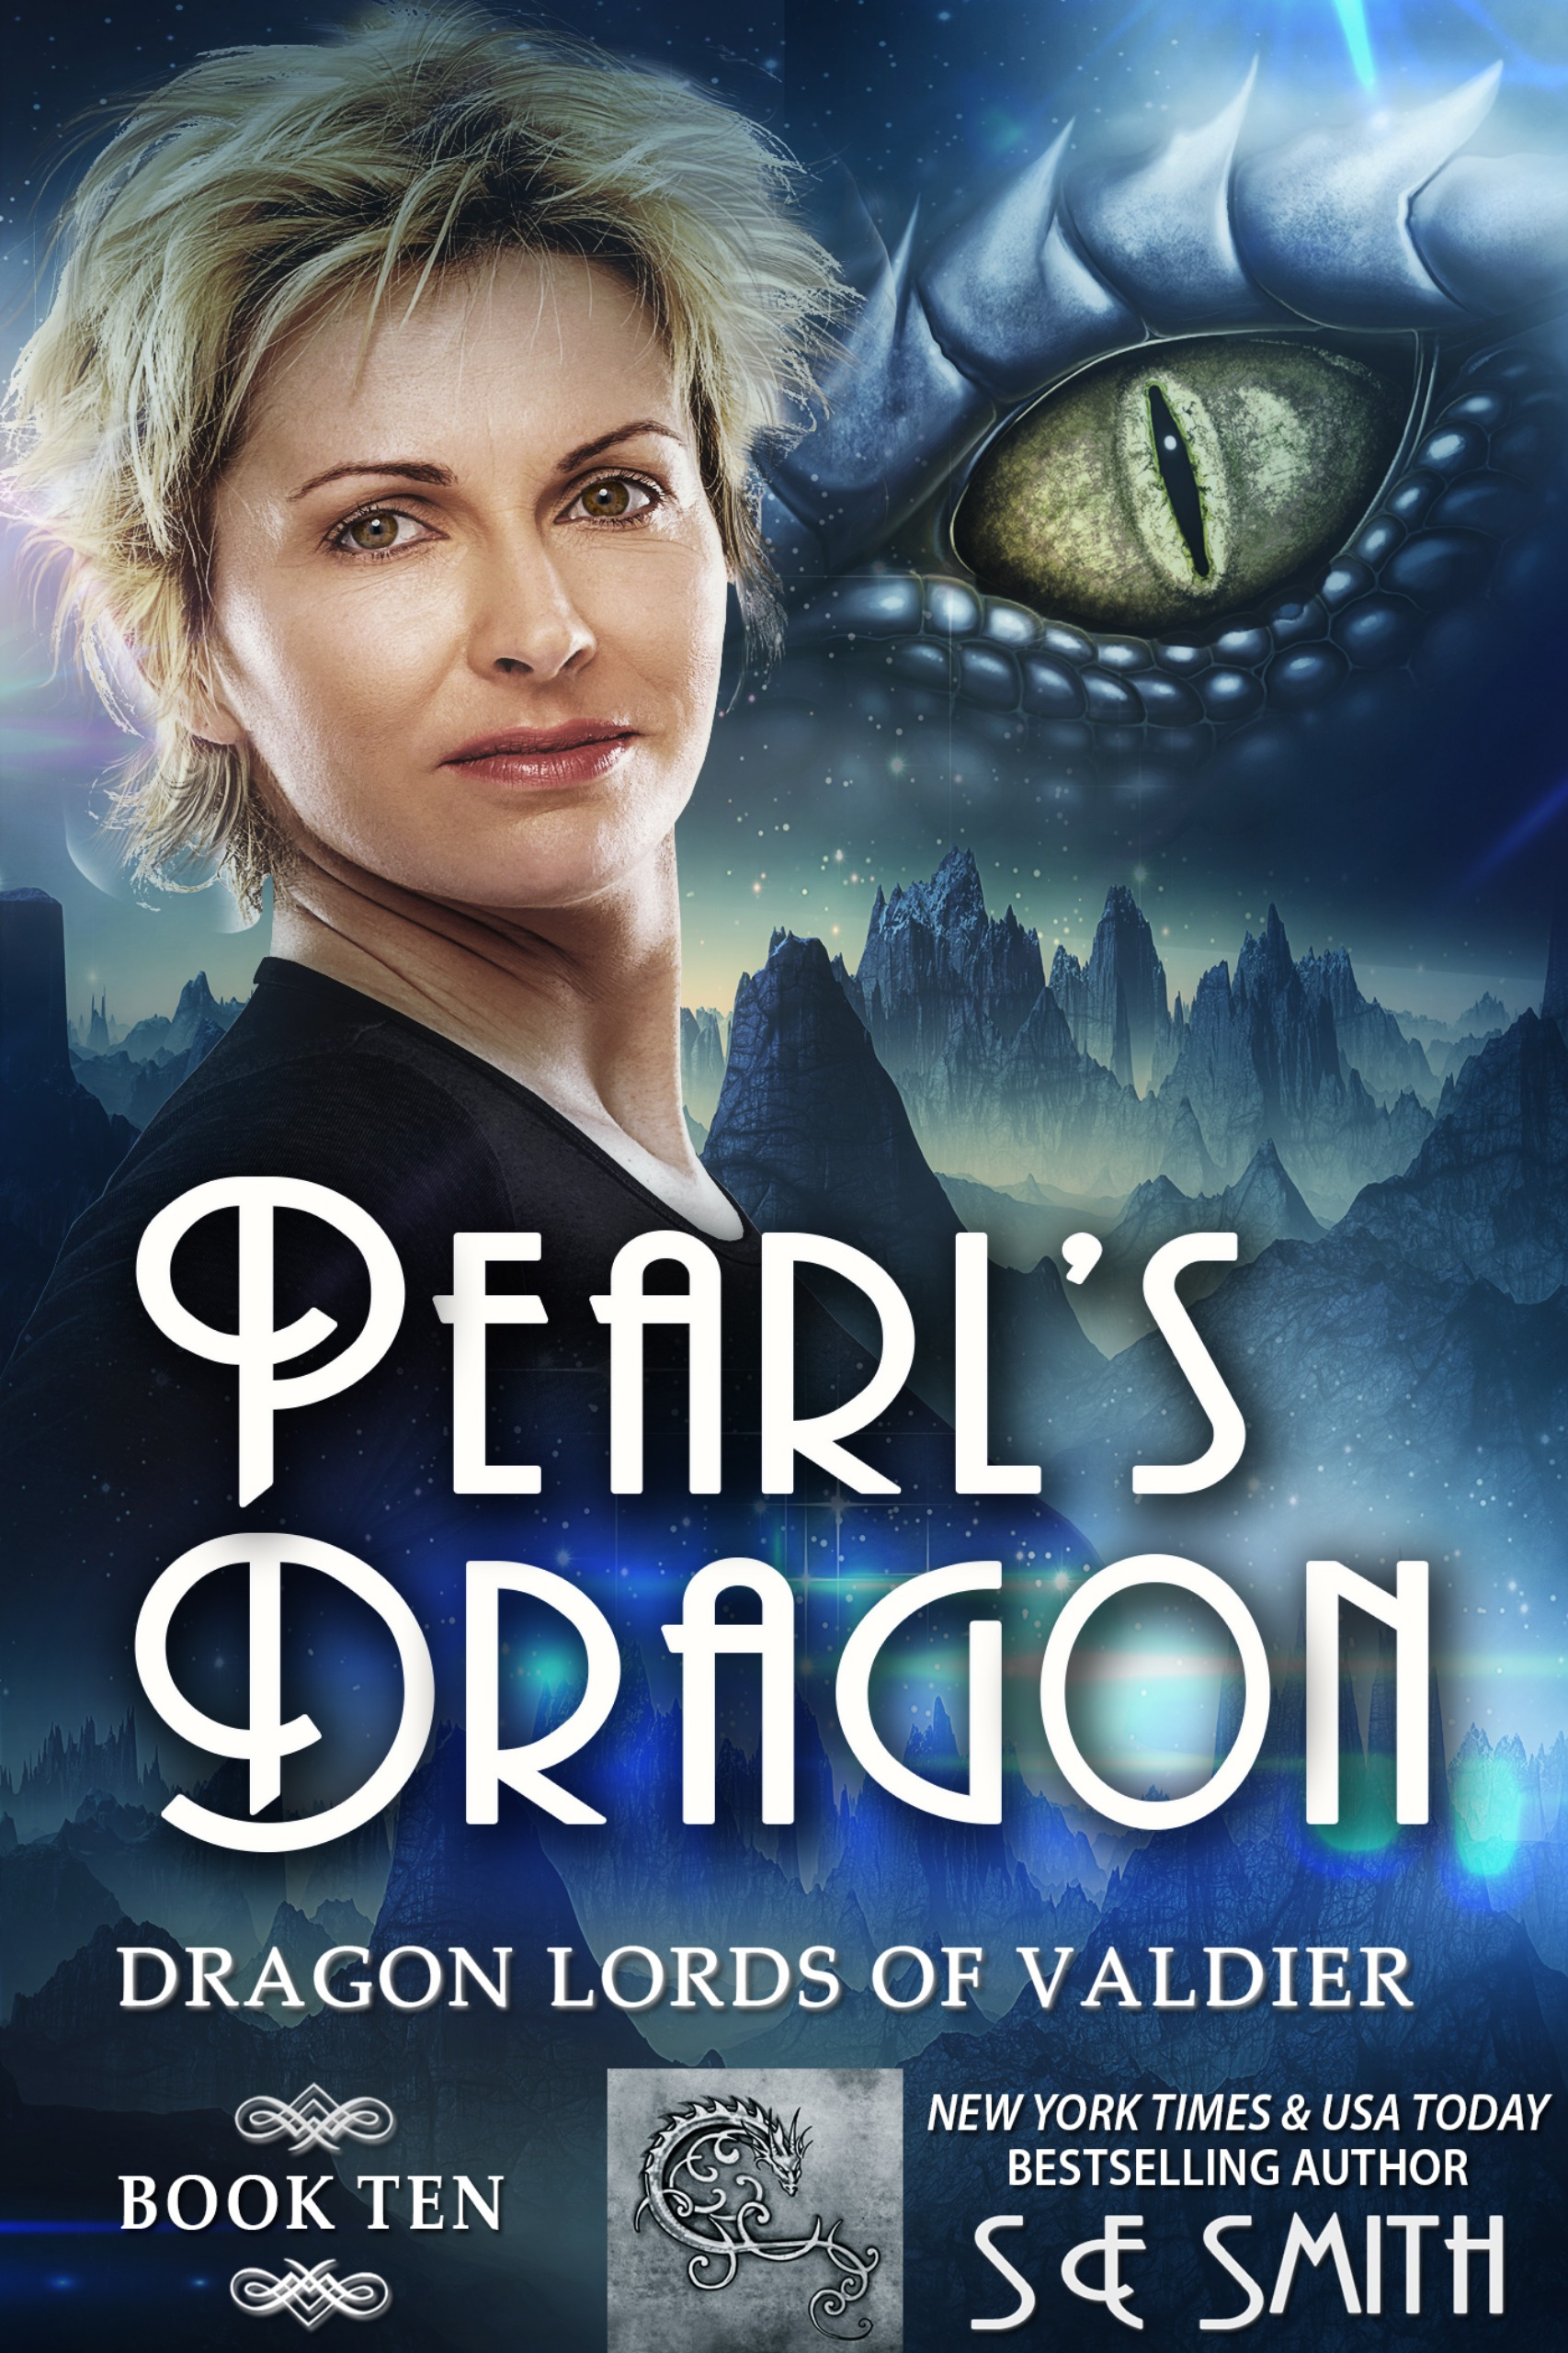 Pearl's Dragon: Dragon Lords of Valdier Book 10 (ebook: Kindle and epub)